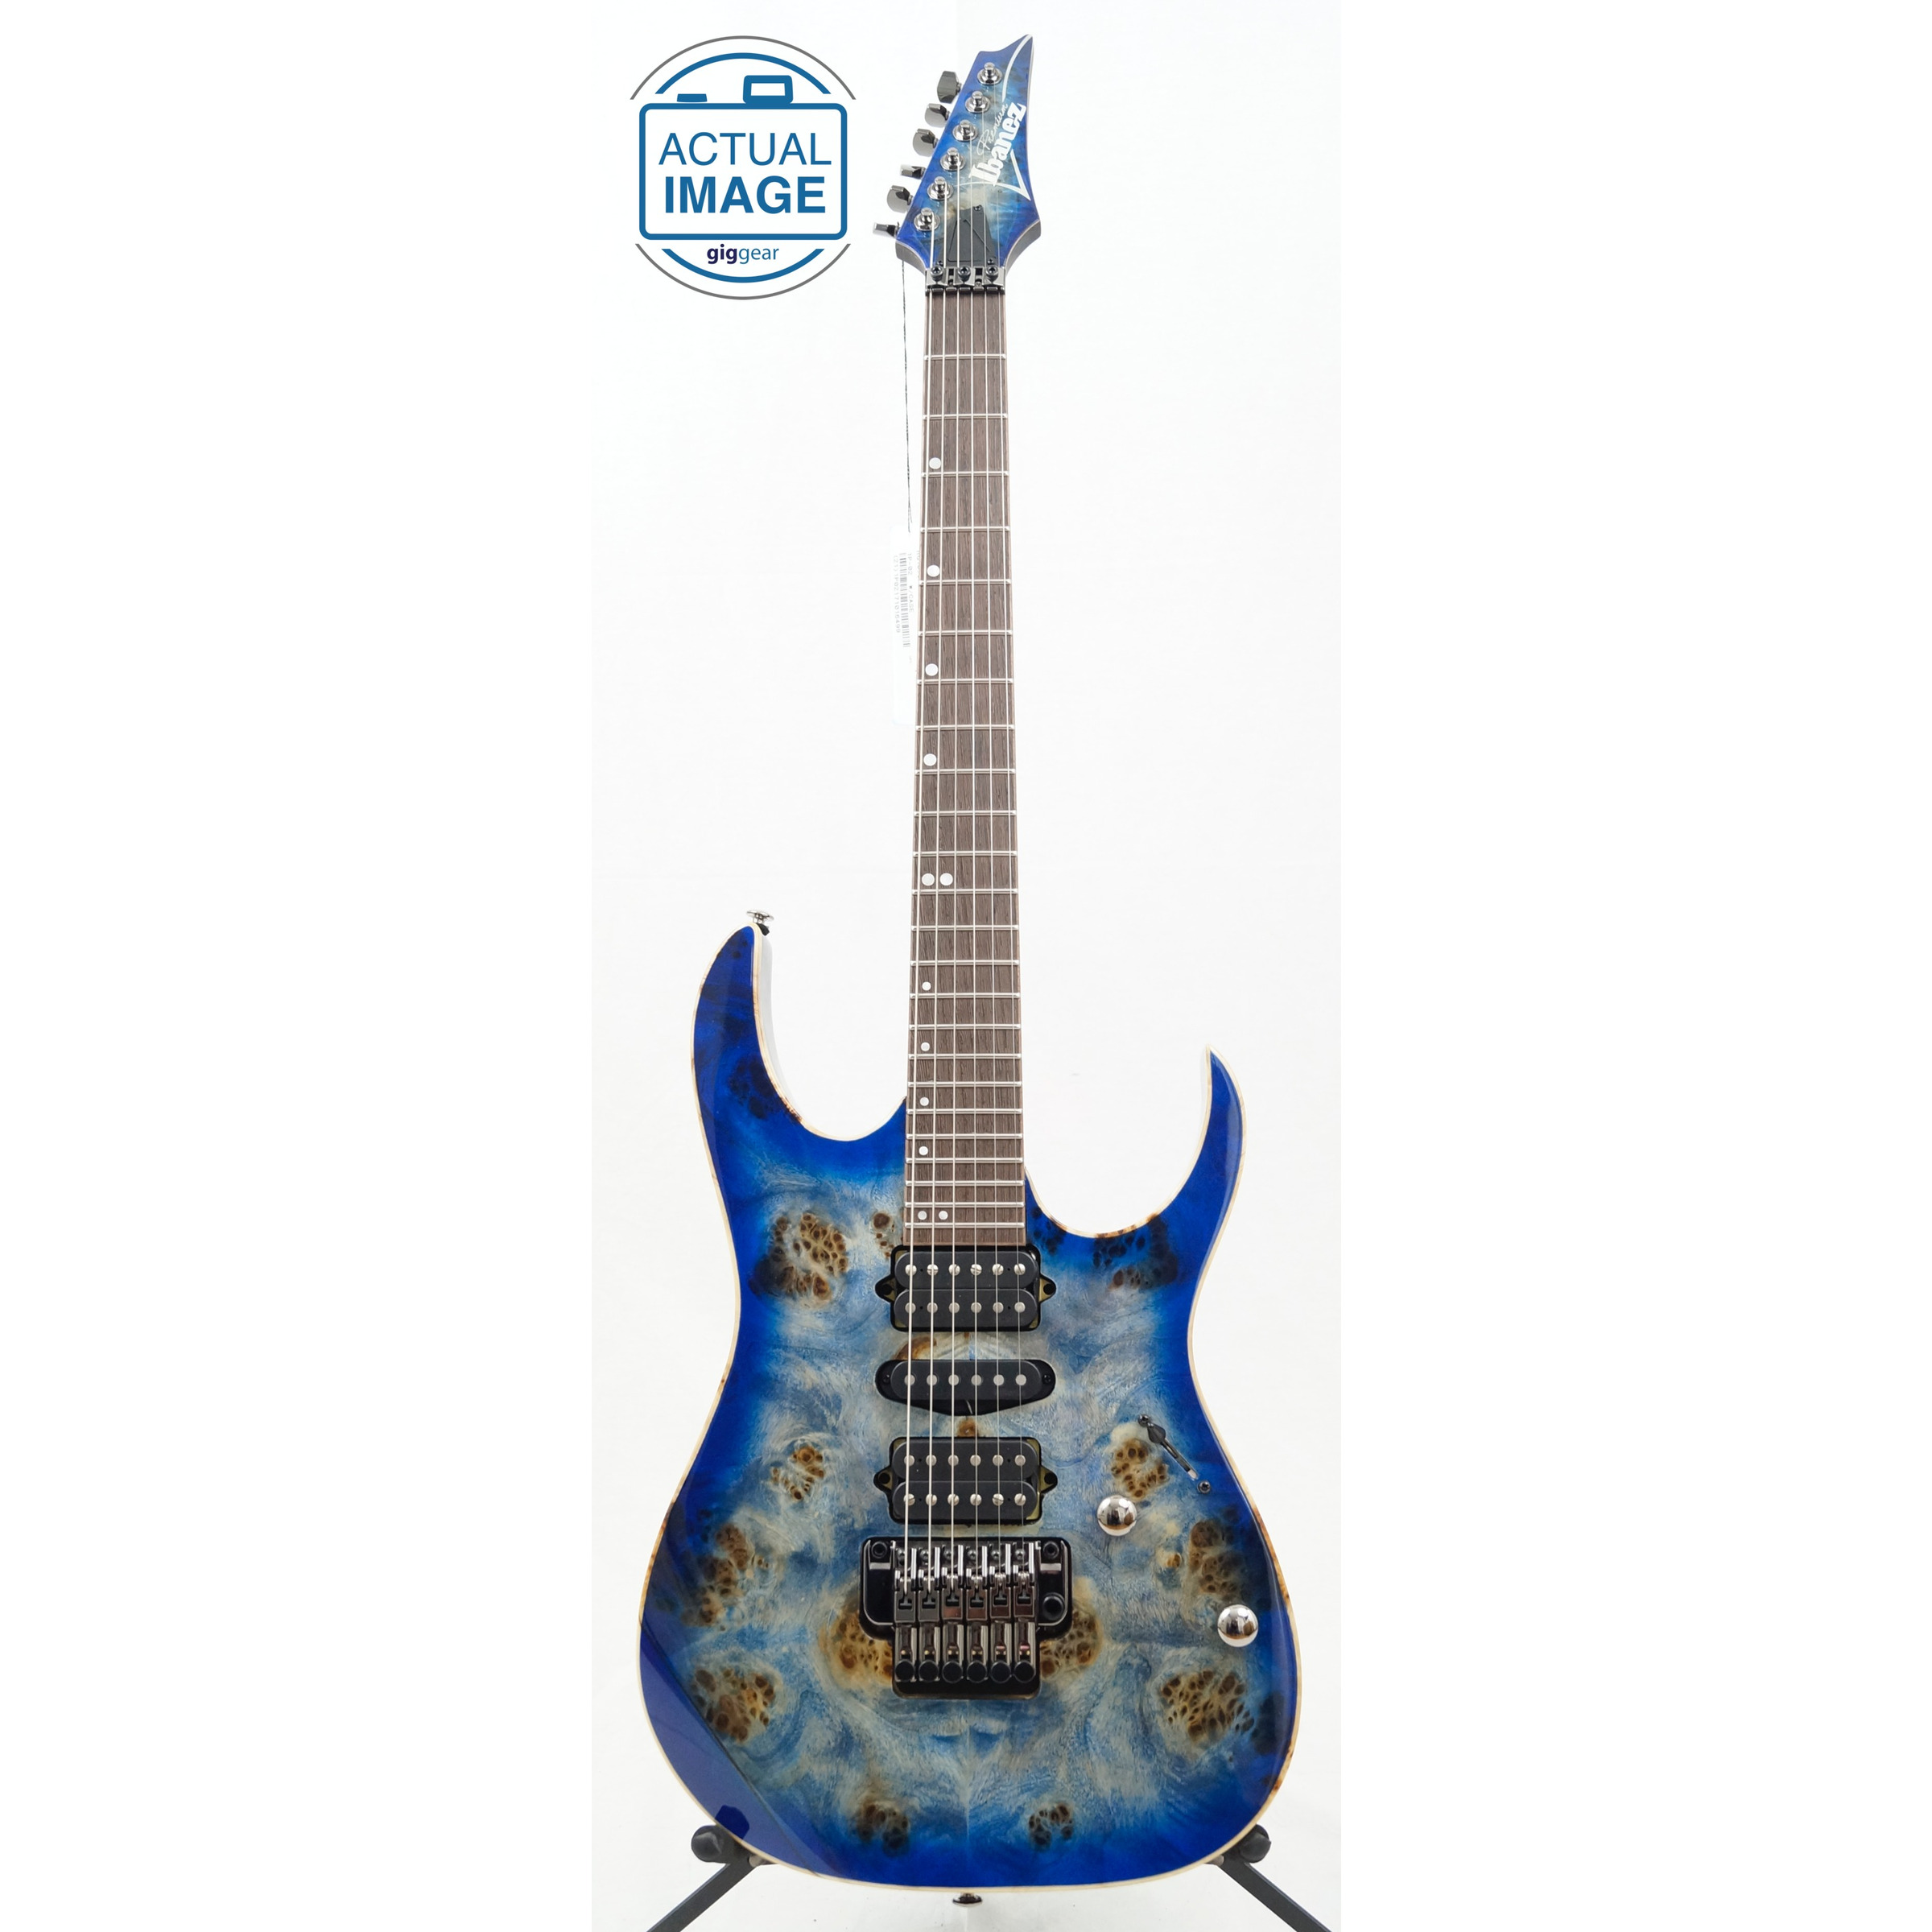 ibanez premium rg1070pbz electric guitar cerulean blue burst giggear. Black Bedroom Furniture Sets. Home Design Ideas